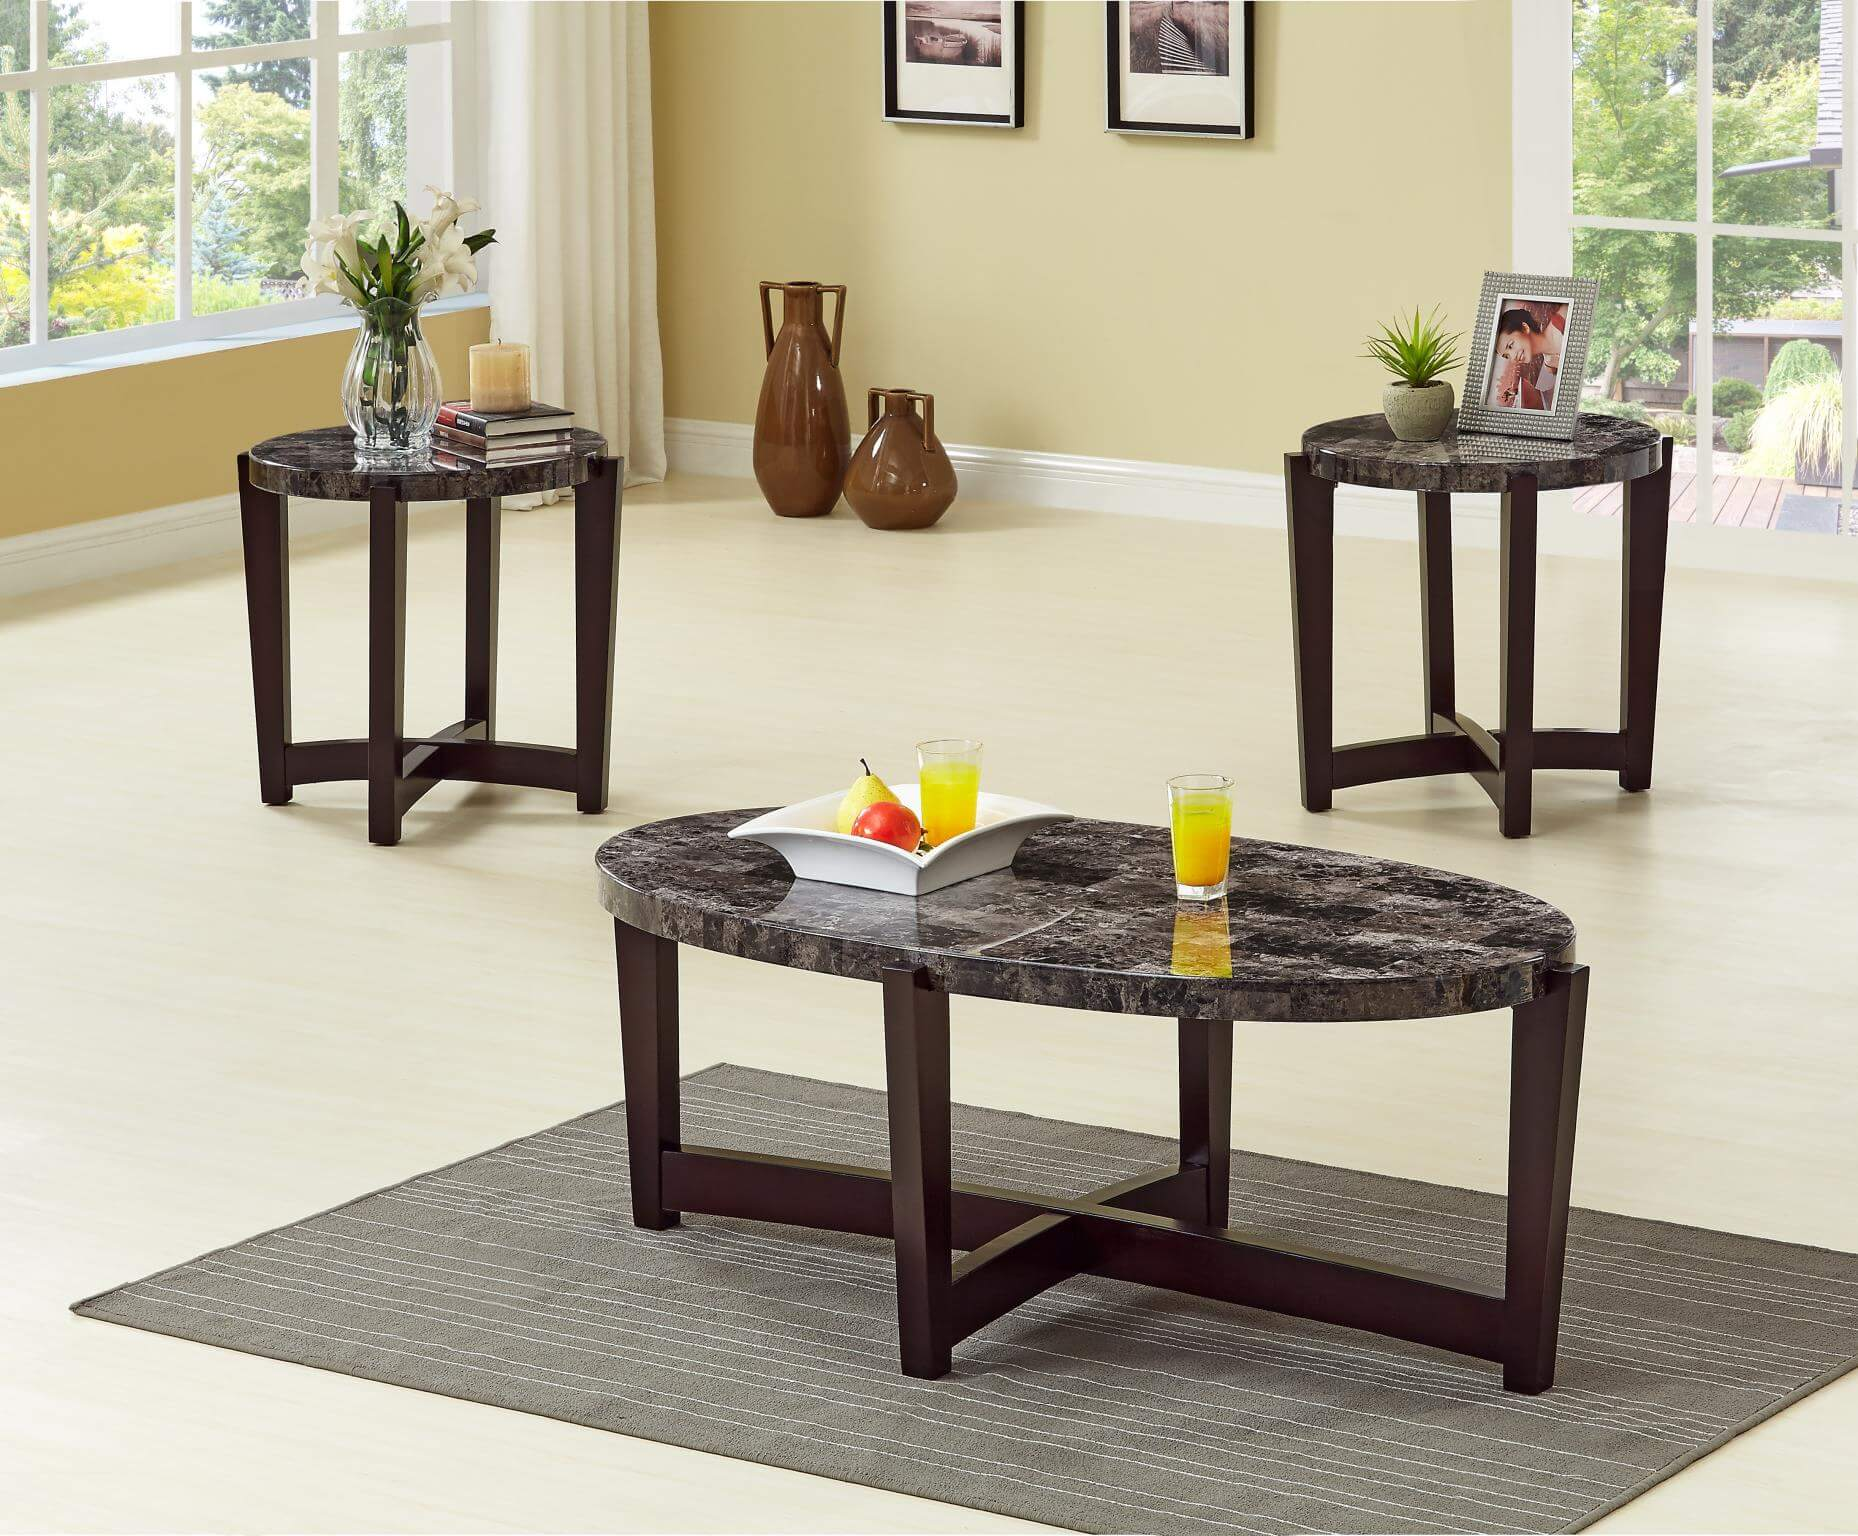 Oval Faux Marble Coffee and End Table Set | Occasional Tables